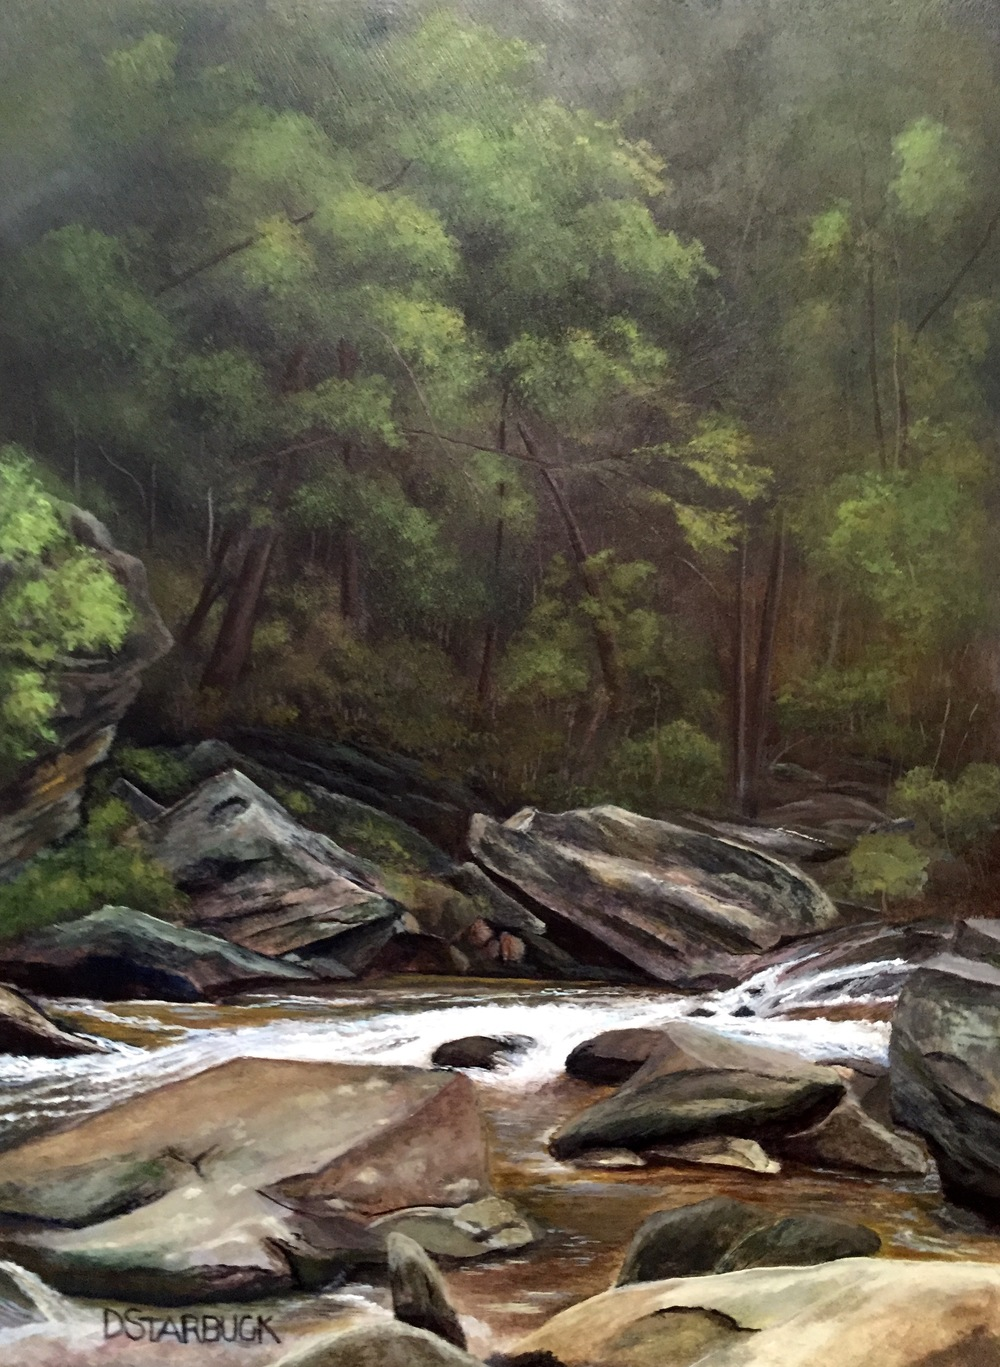 """Looking For Tight Lines"" Graggs Creek, Blue Ridge Parkway, North Carolina  Original: Acrylic on Panel, 10"" x 13.5"""